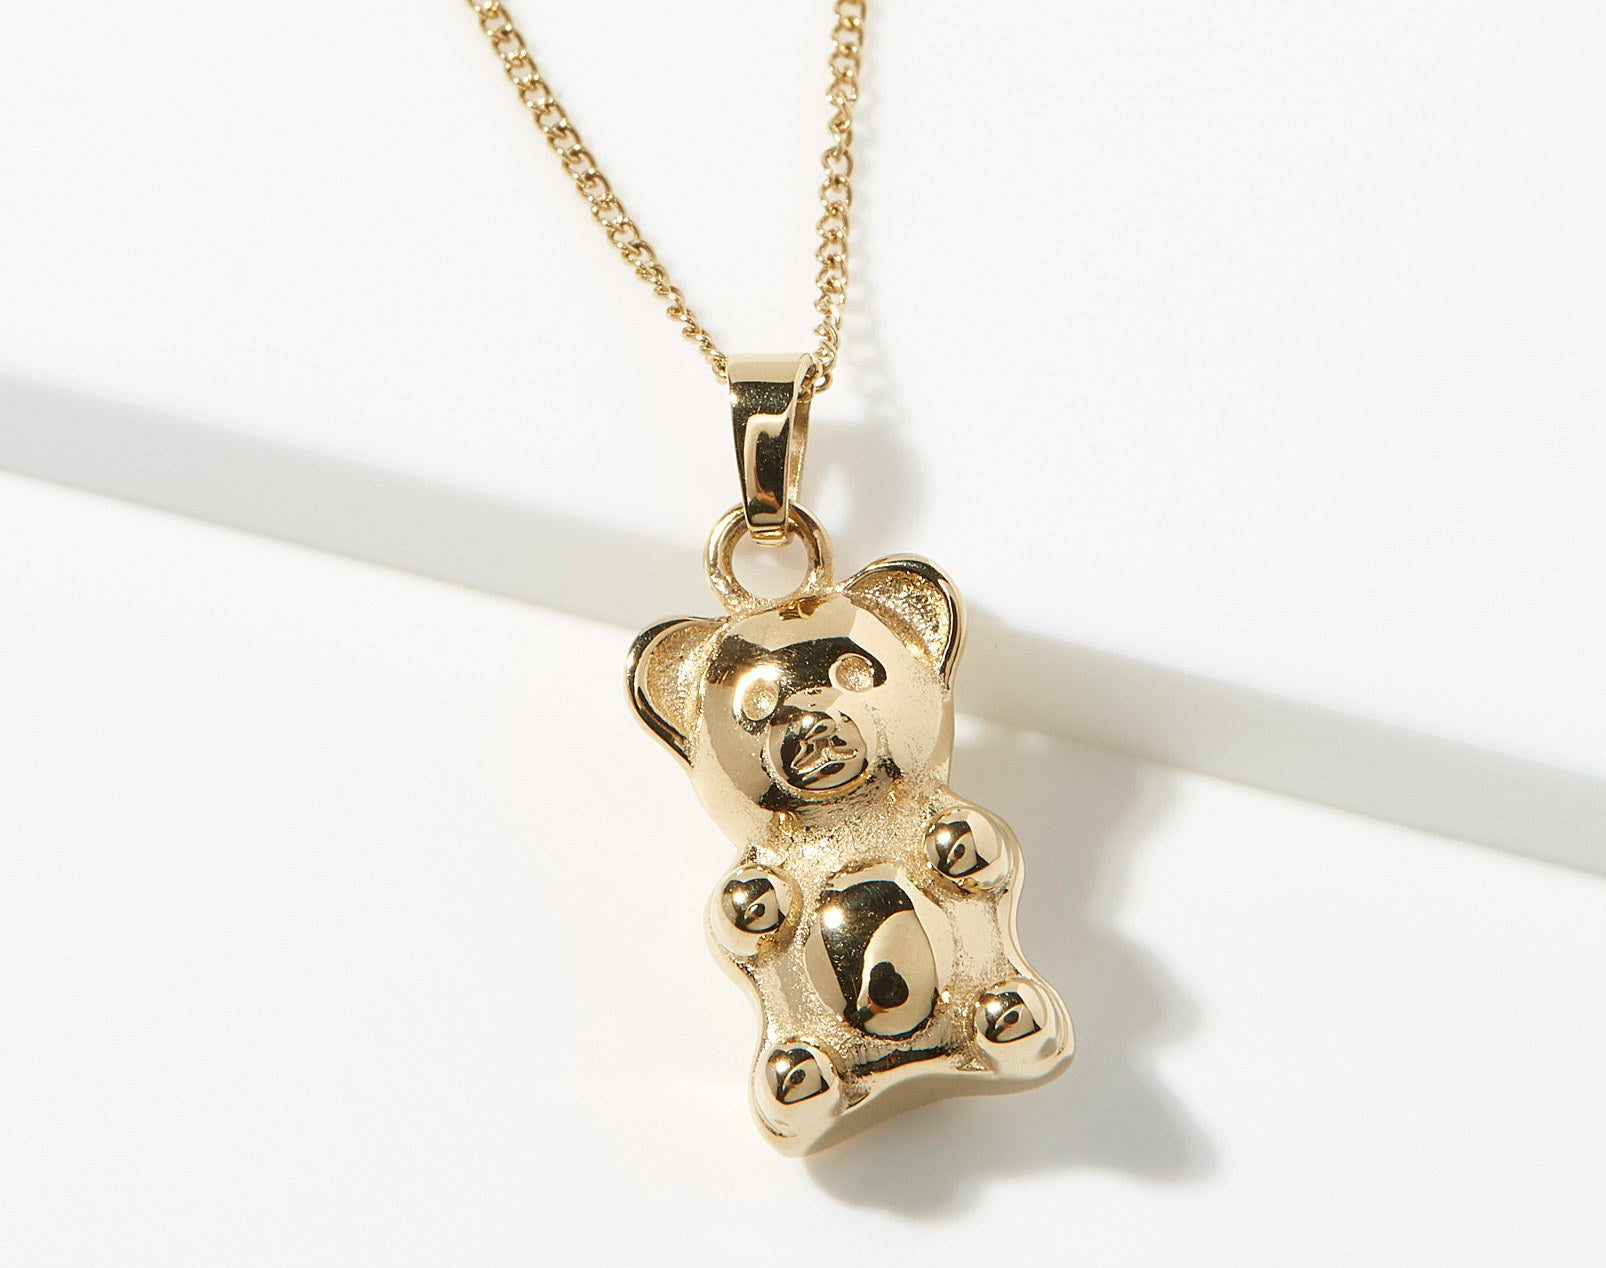 A gold necklace with a gummy bear shaped pendant